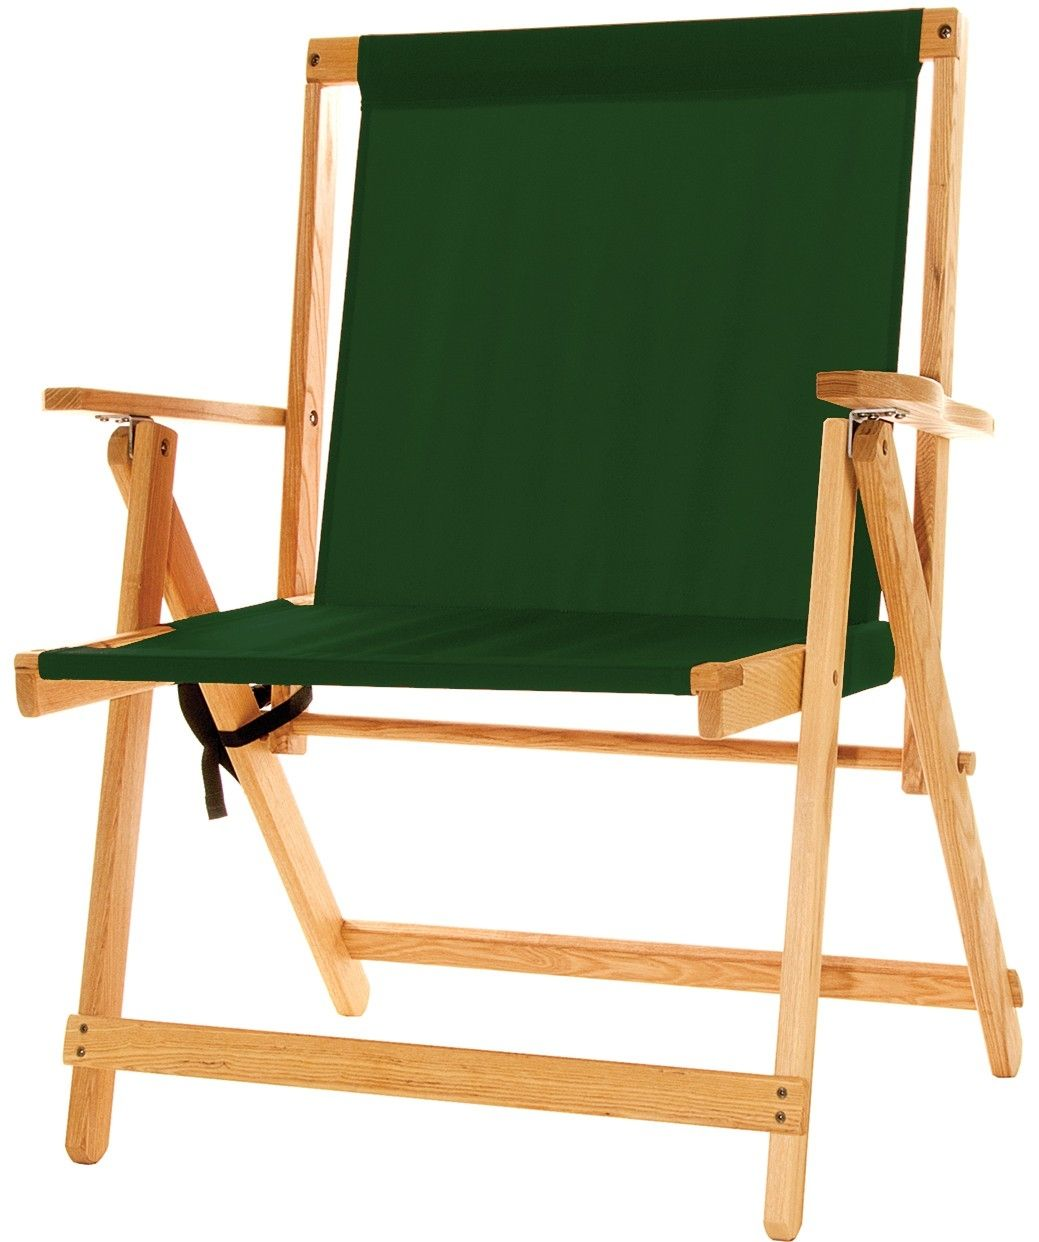 Folding Wood Boat Deck Chairs